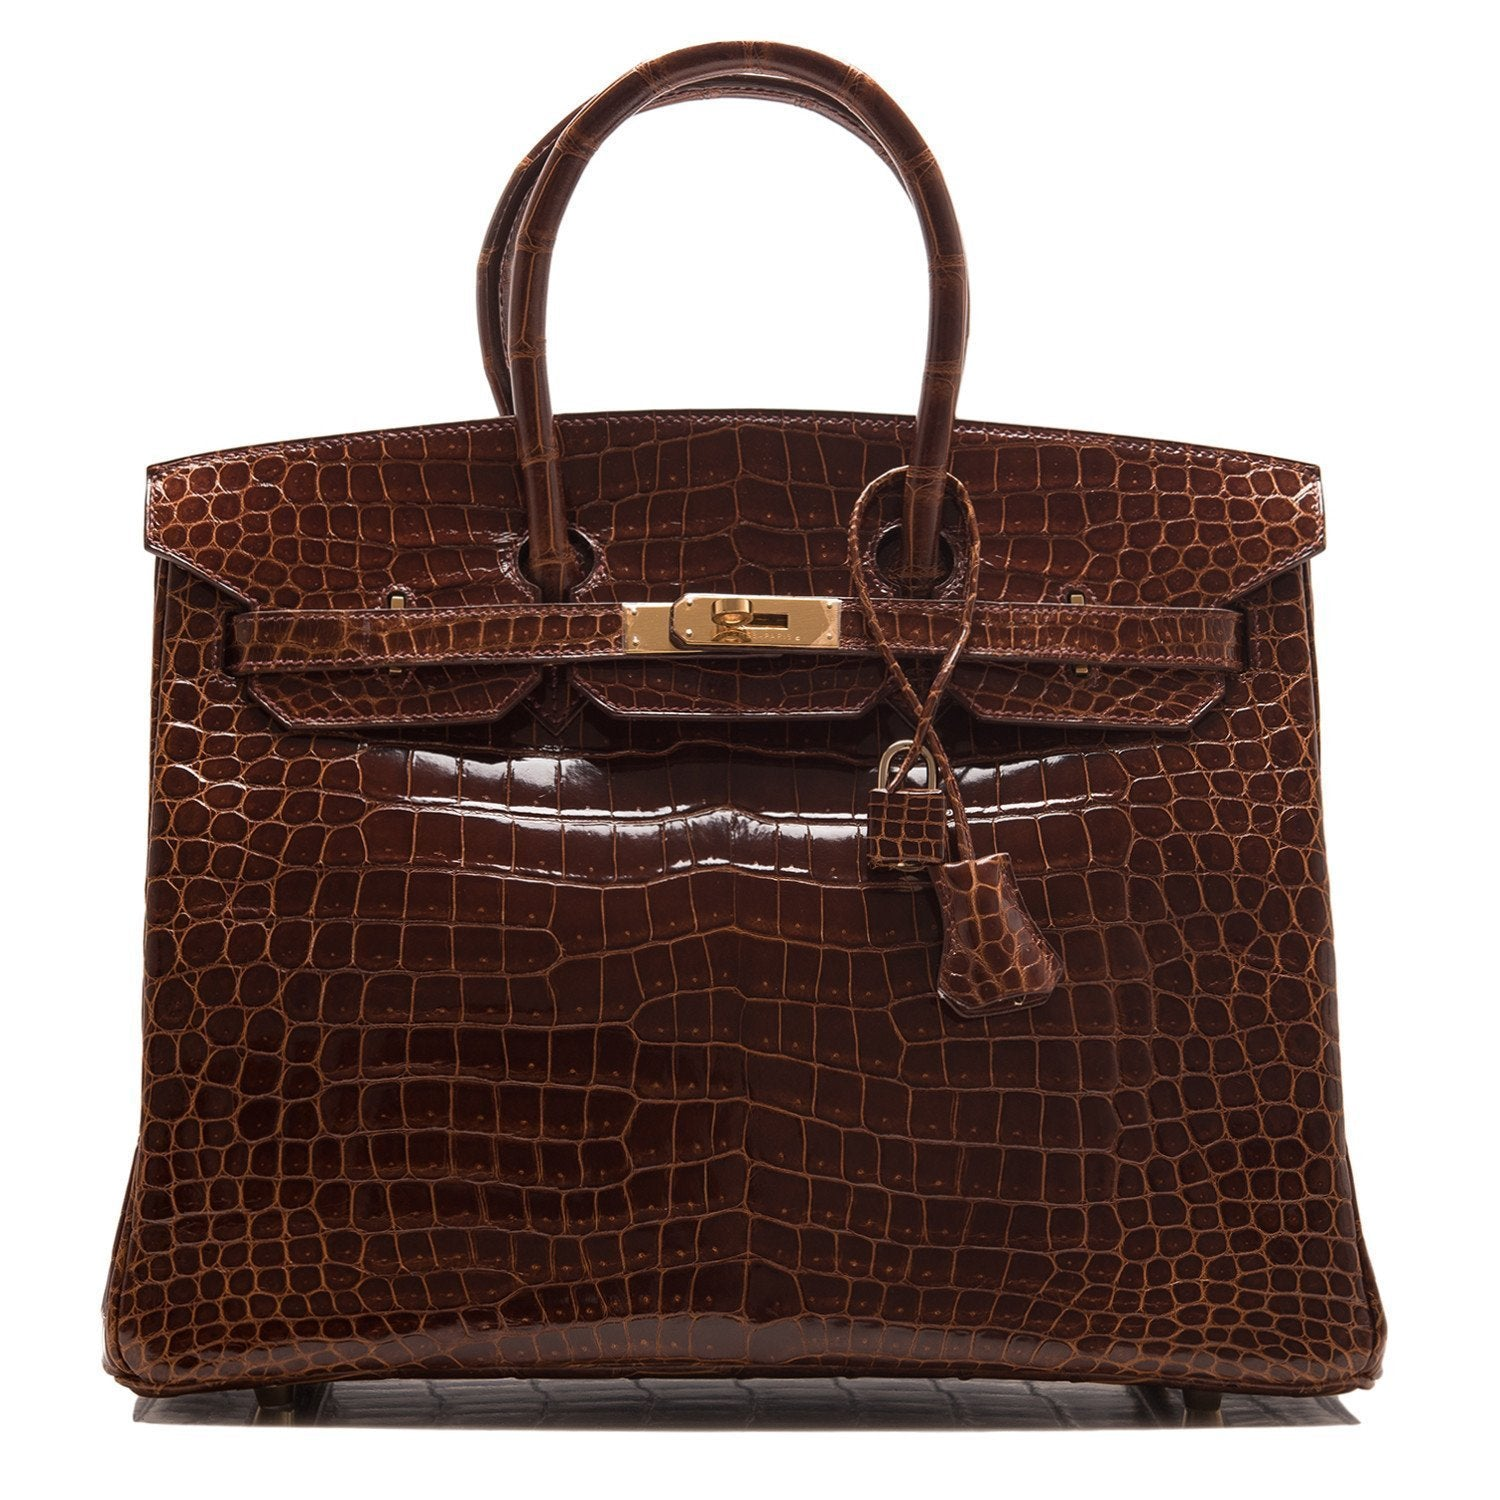 Hermes Cognac Shiny Porosus Crocodile Birkin 35Cm Gold Hardware Pre Loved Handbags